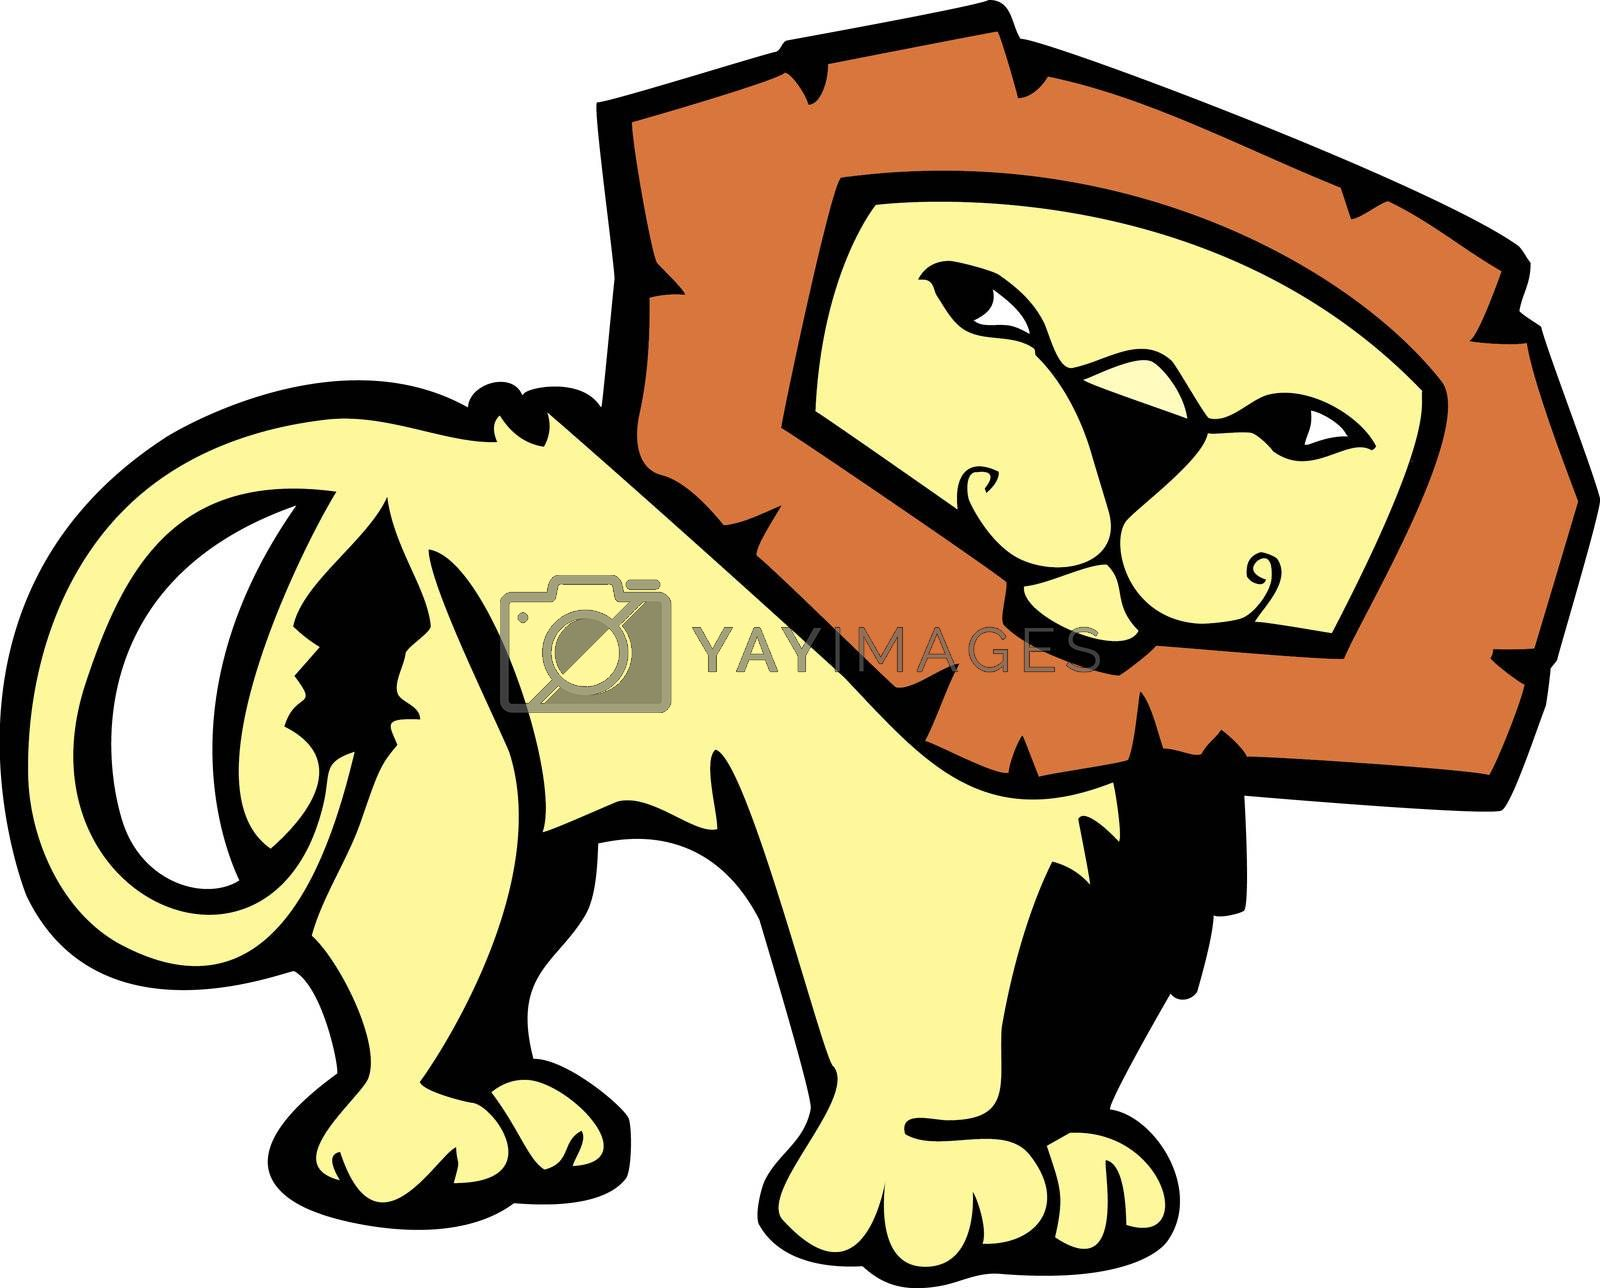 Cartoon of a male African lion with a pleasant expression.